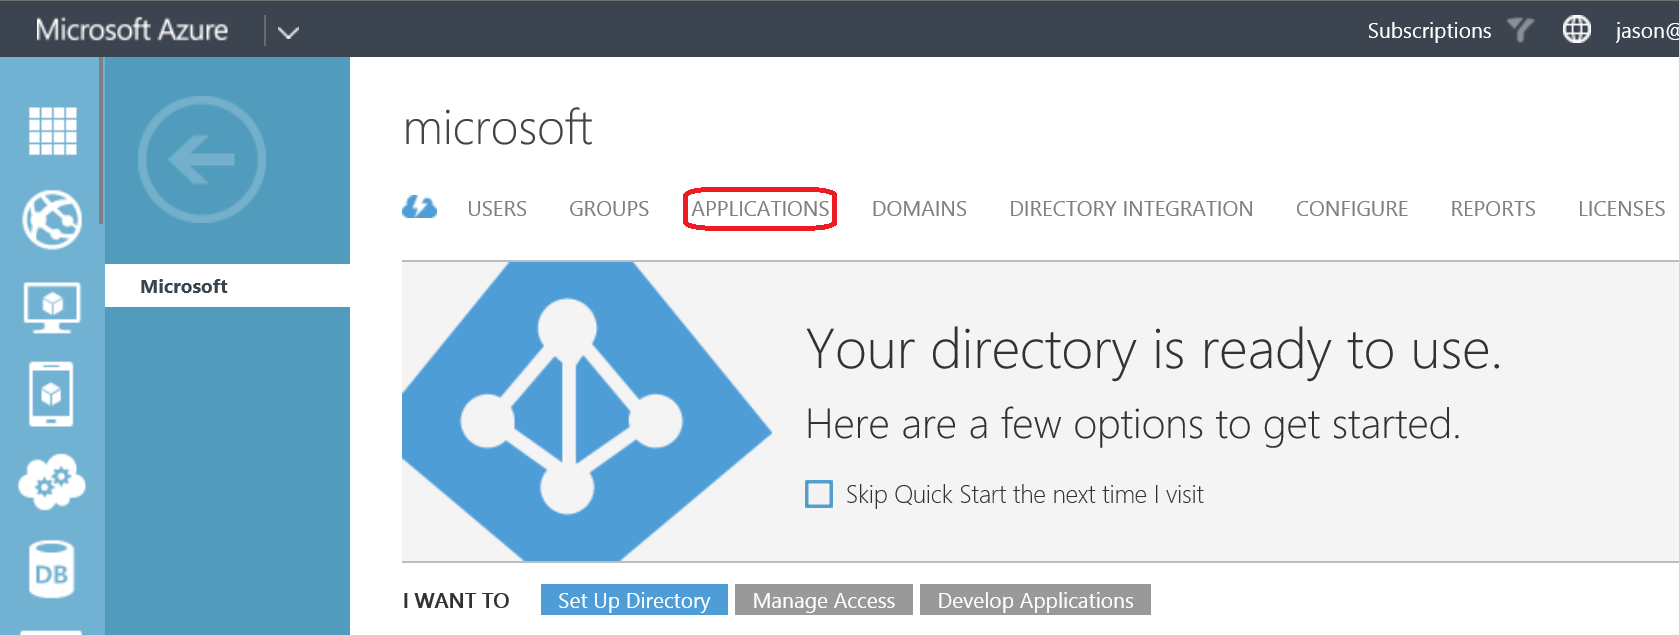 office365-azure-guides/RegisterAnAppInAzure md at master